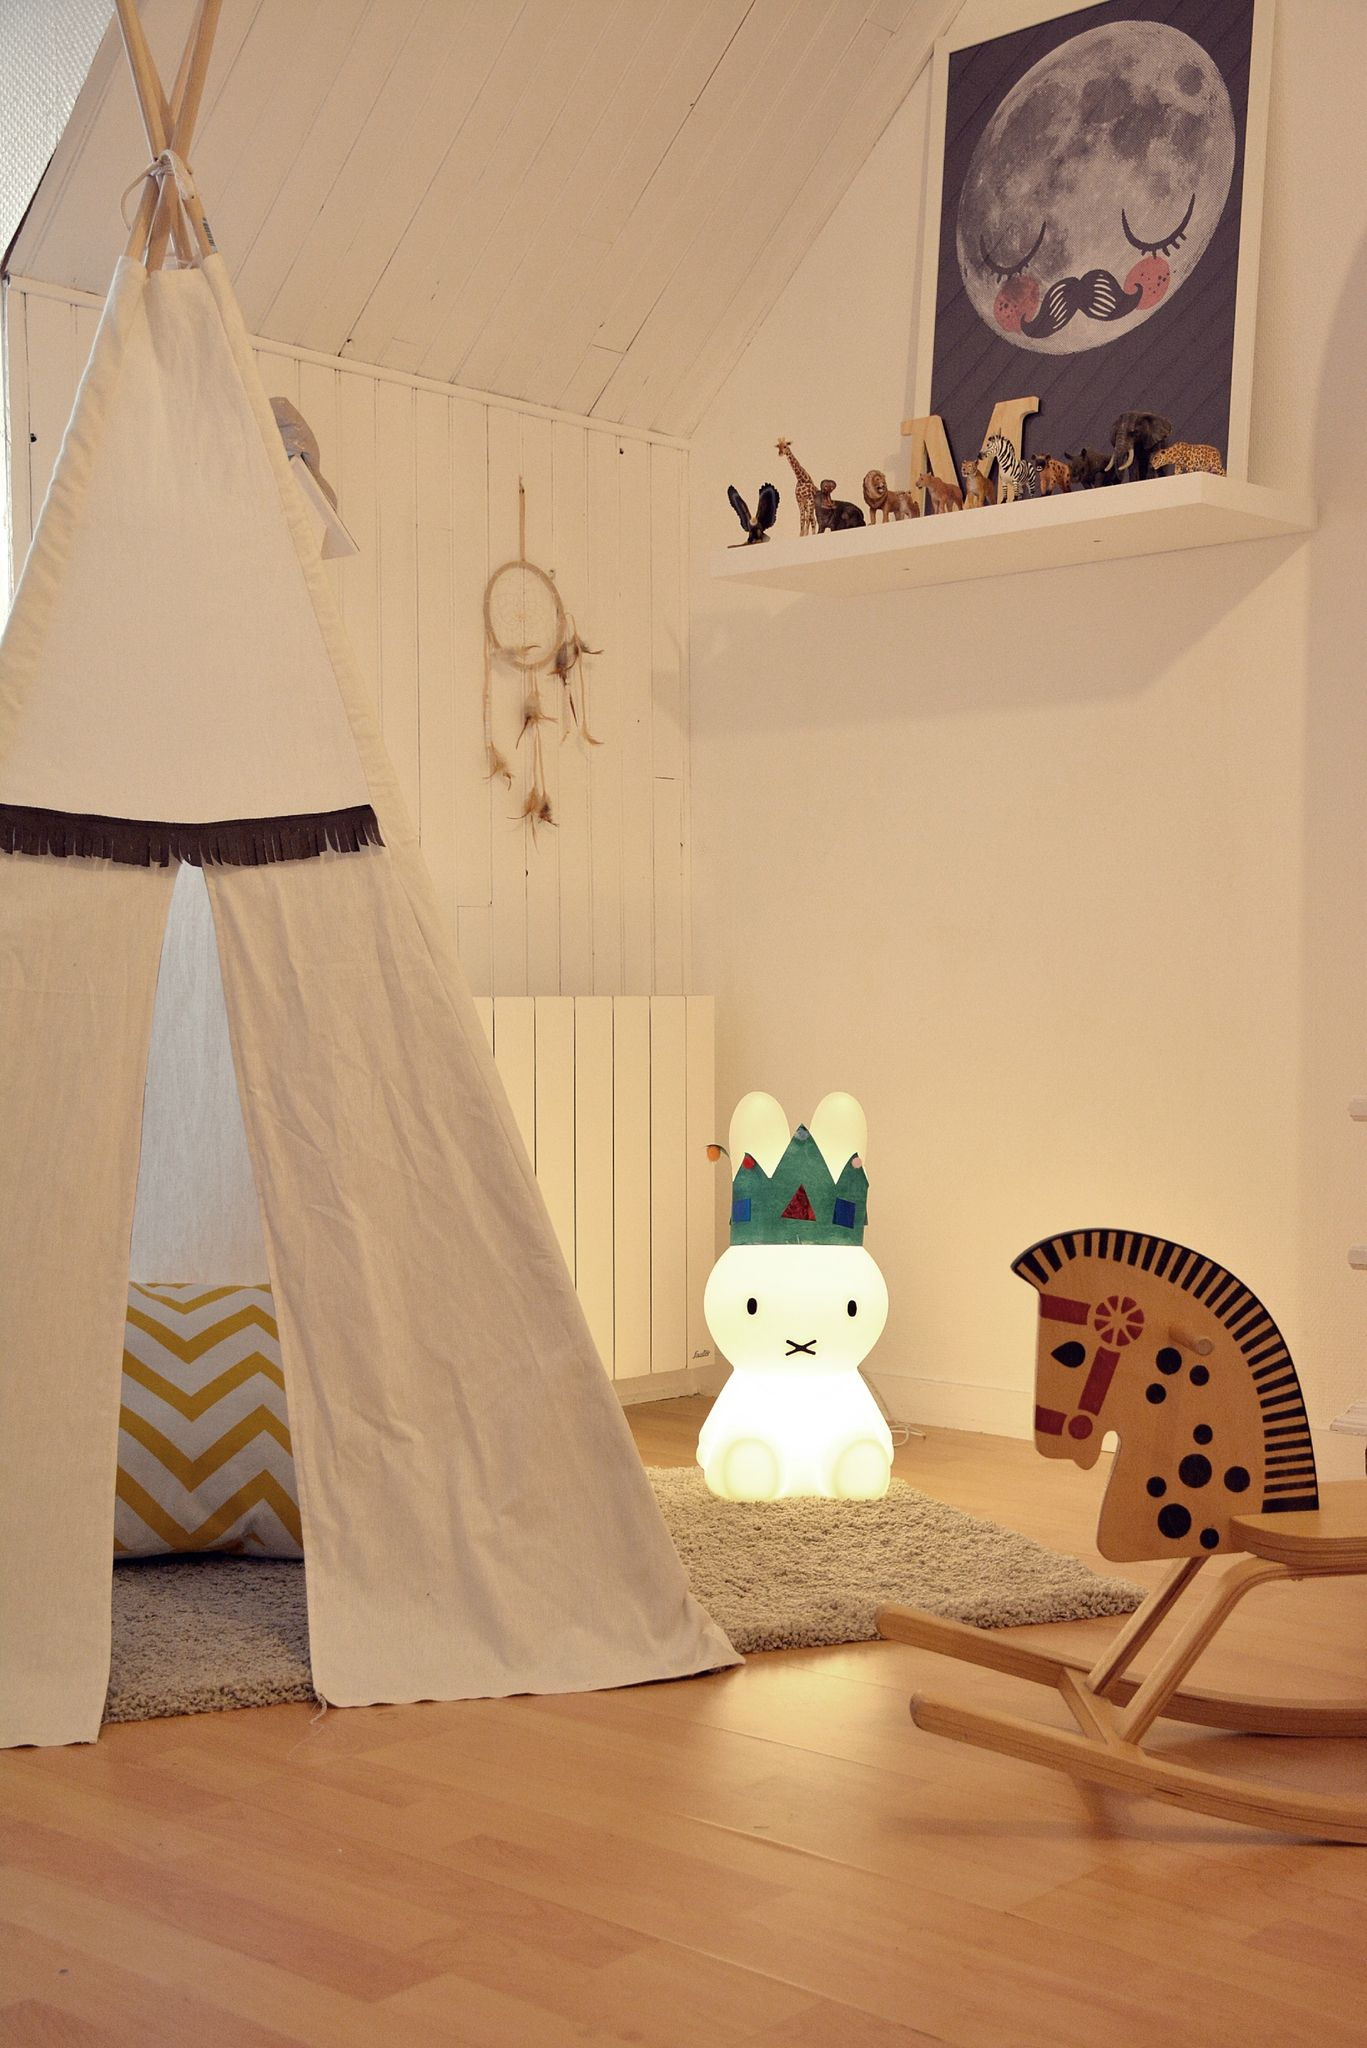 fabriquer soi m me un tipi chambre d 39 enfants pinterest messages tags et conseils. Black Bedroom Furniture Sets. Home Design Ideas